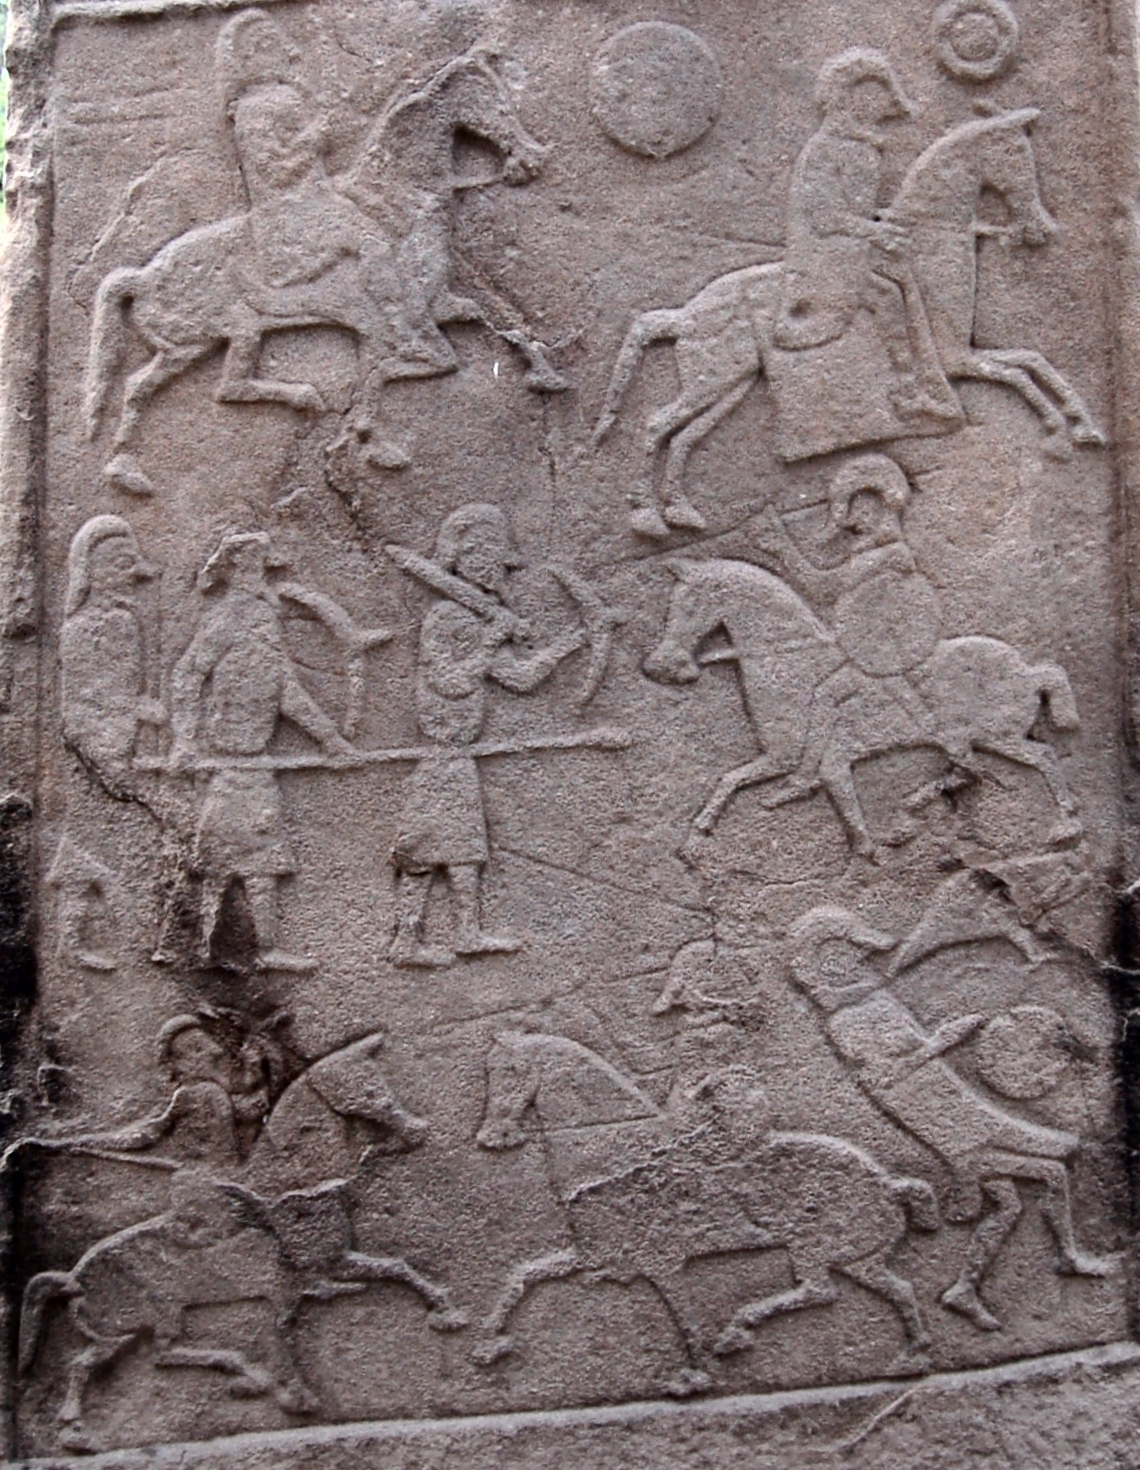 Battle scene from the Aberlemno II stone, supposed by some to depict the Battle of Nechtanesmere